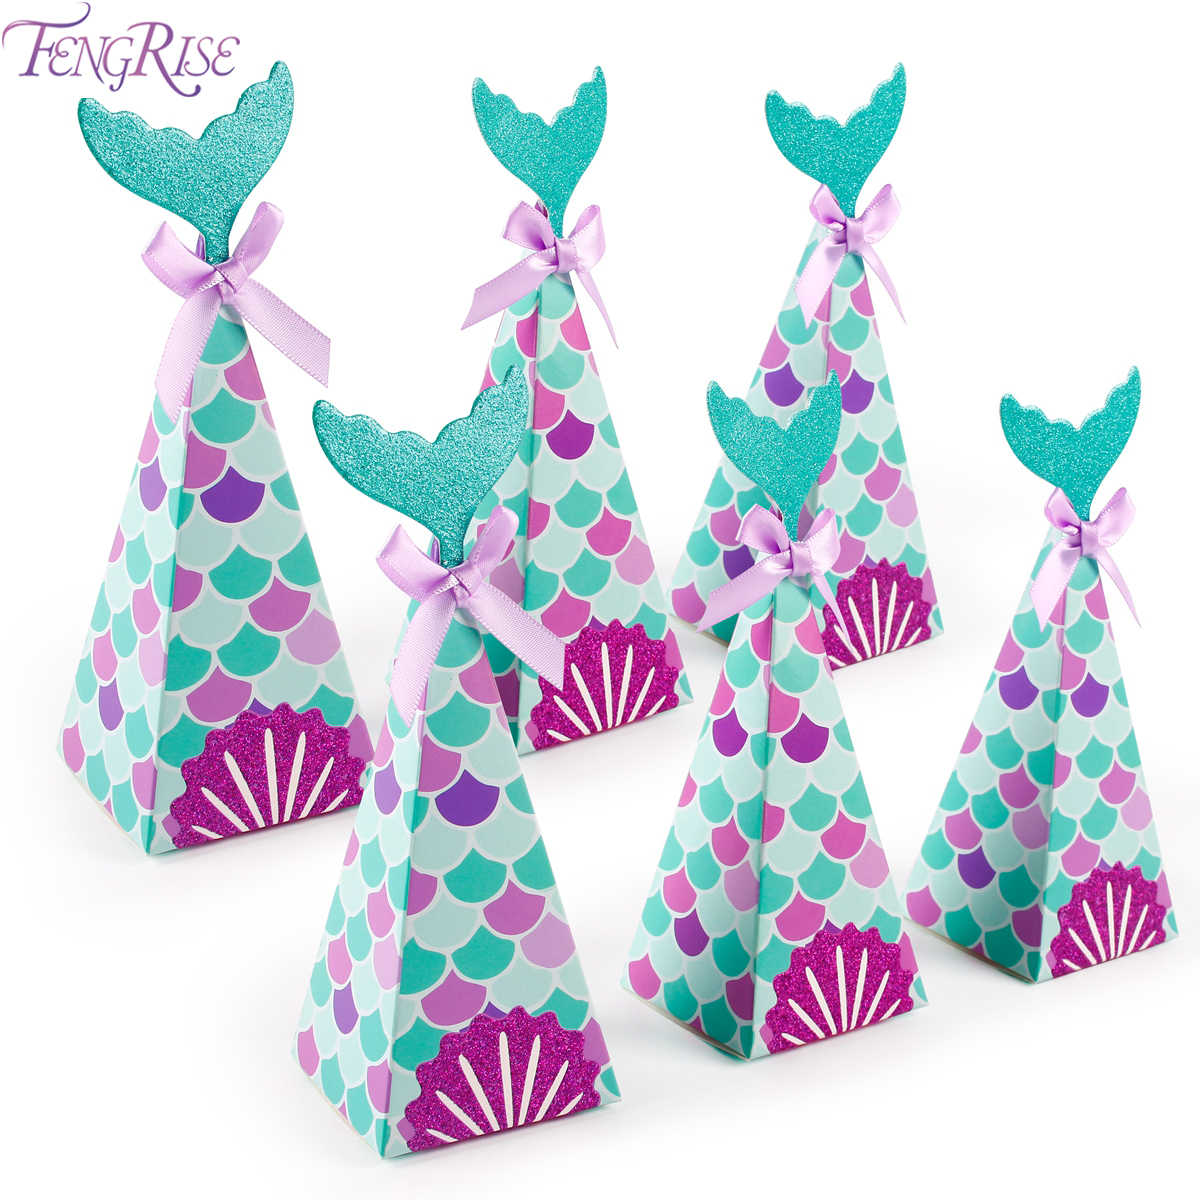 Fengrise Little Mermaid Party Gift Candy Boxes Mermaid Birthday Party Decor Kids Birthday Party Supplies 1 Year Birthday Decor Party Diy Decorations Aliexpress